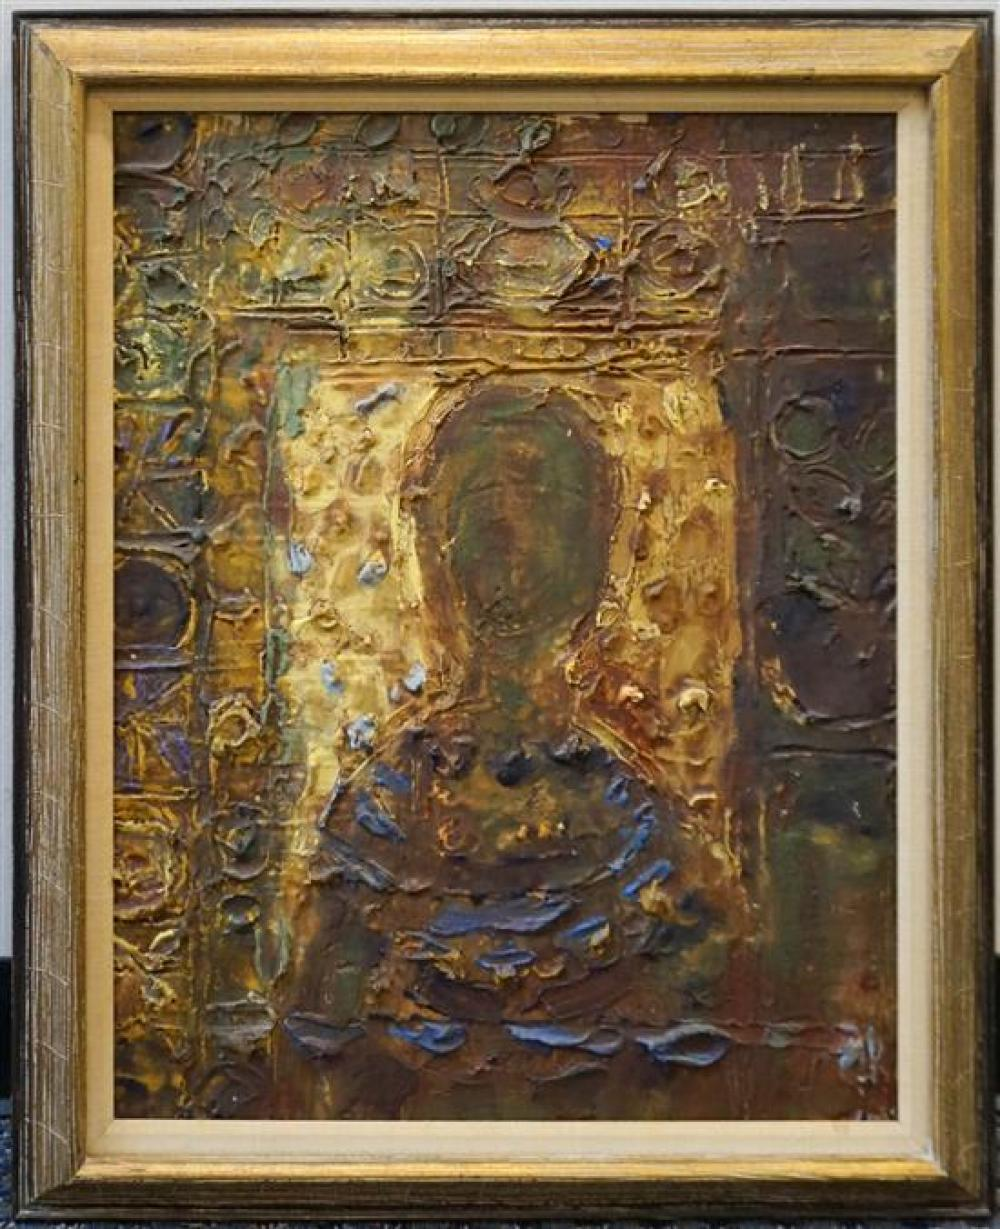 Unknown Contemporary Artist, Untitled Abstract, Heavy Impasto on Board, Frame: 31 x 25-1/2 in